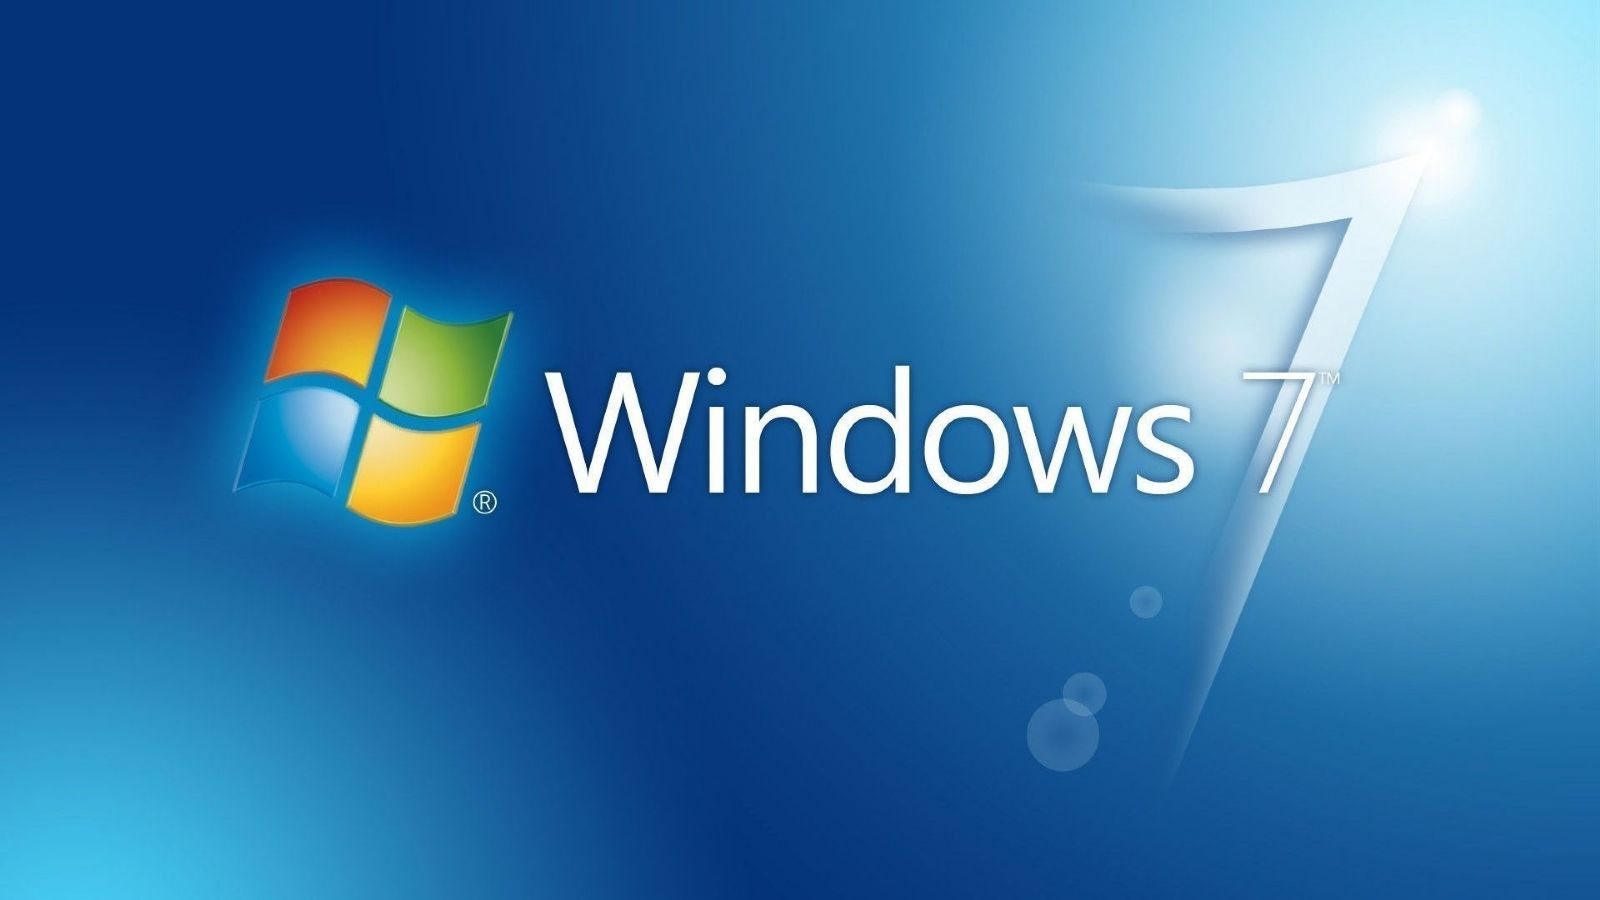 Windows 7 Background Wallpaper Hd For Desktop And Mobile Hd Wallpapers For Pc Hd Wallpaper Desktop Desktop Wallpaper Black